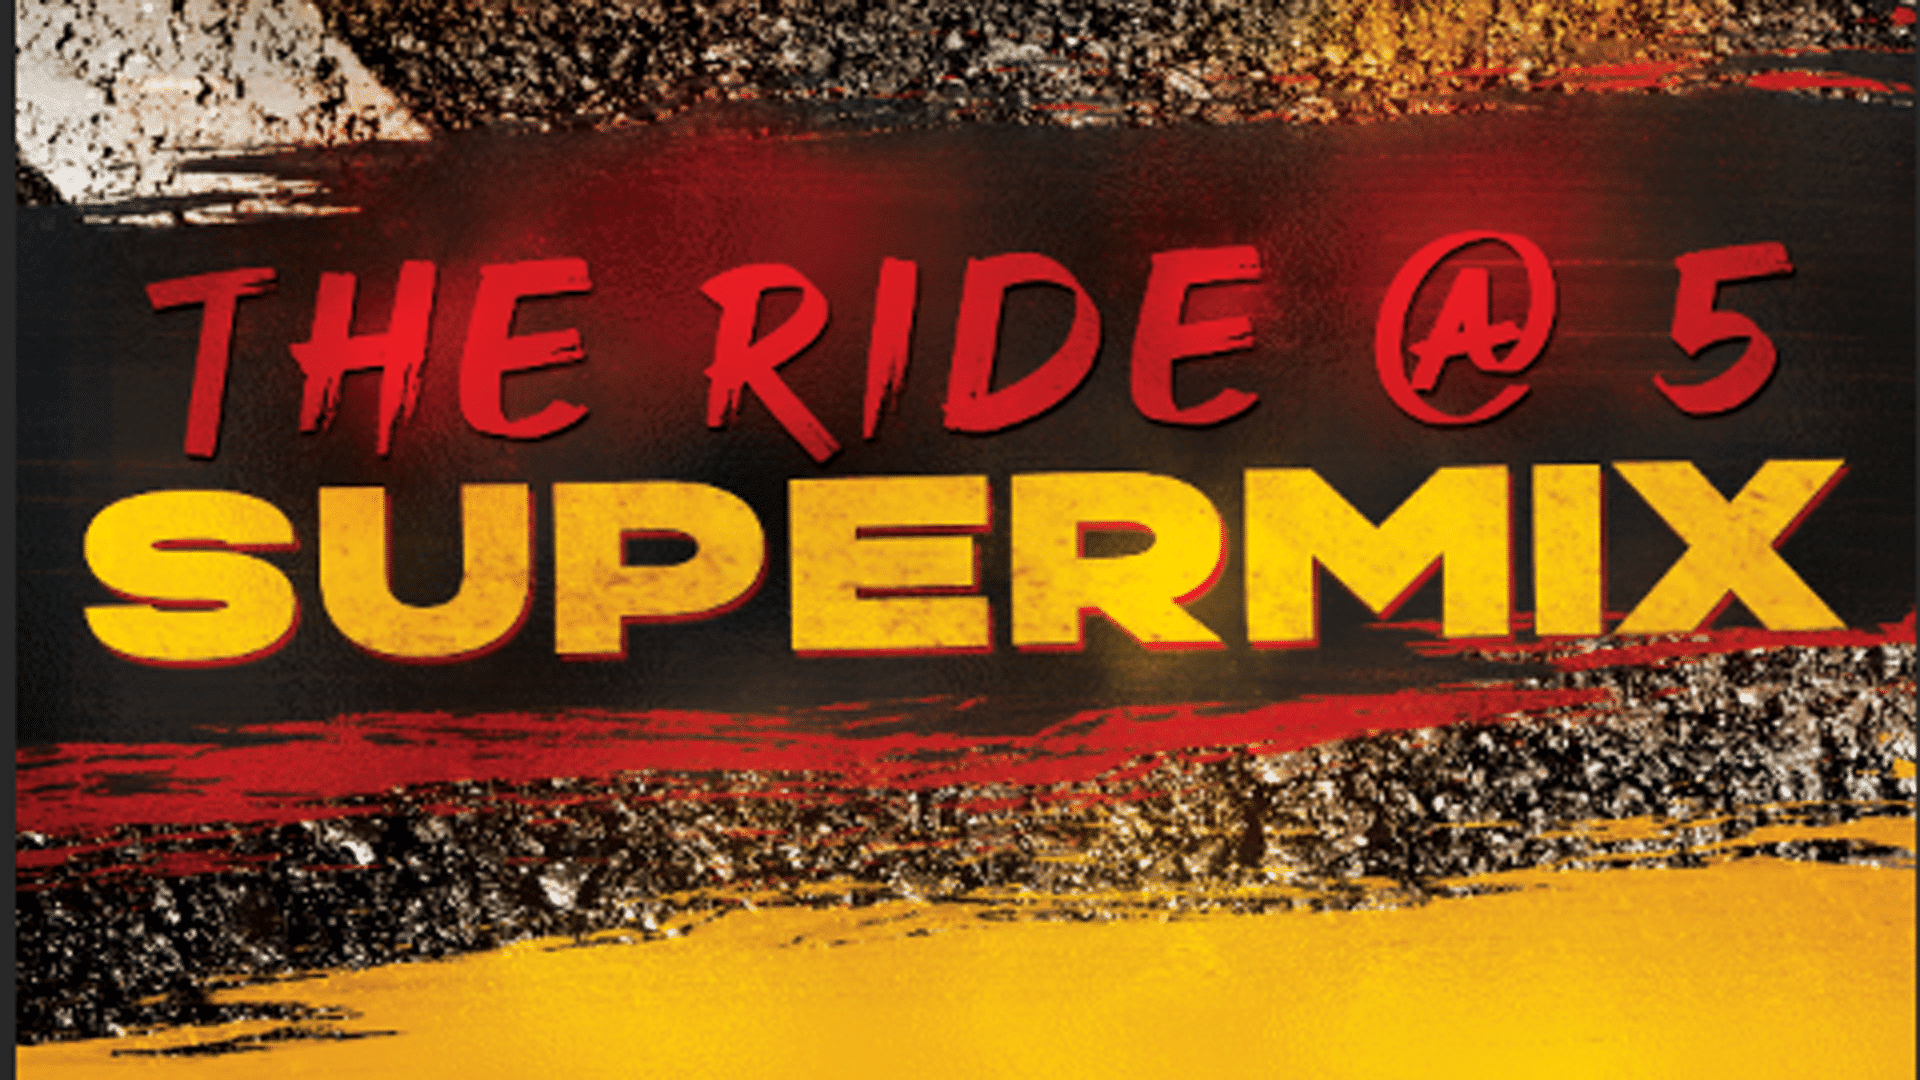 Ride @ 5 Super Mix